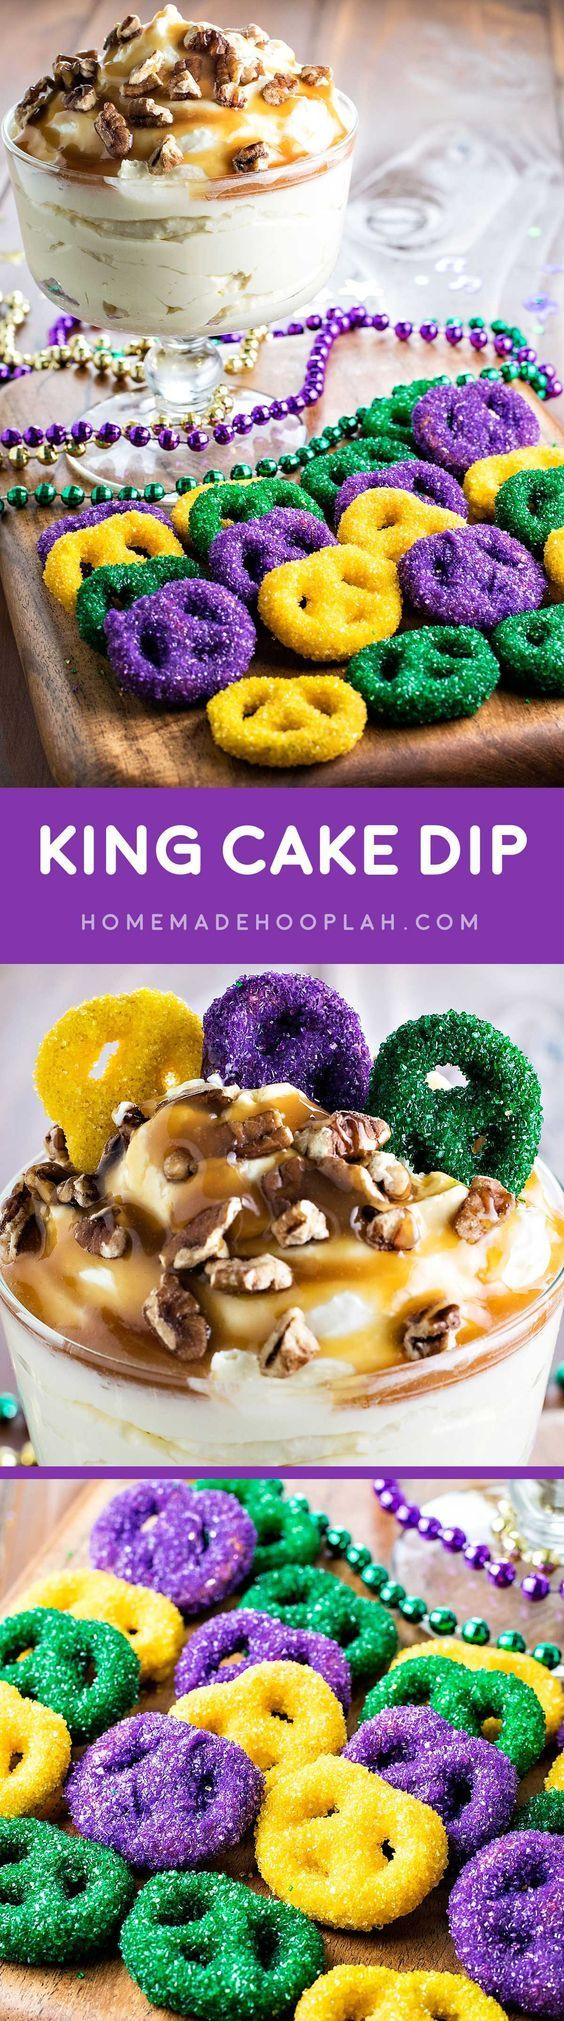 King Cake Dip! Enjoy this Mardi Gras favorite the easy way: cake batter dip topped with caramel and pecans, then served with candy and sprinkle dipped pretzels. | http://HomemadeHooplah.com